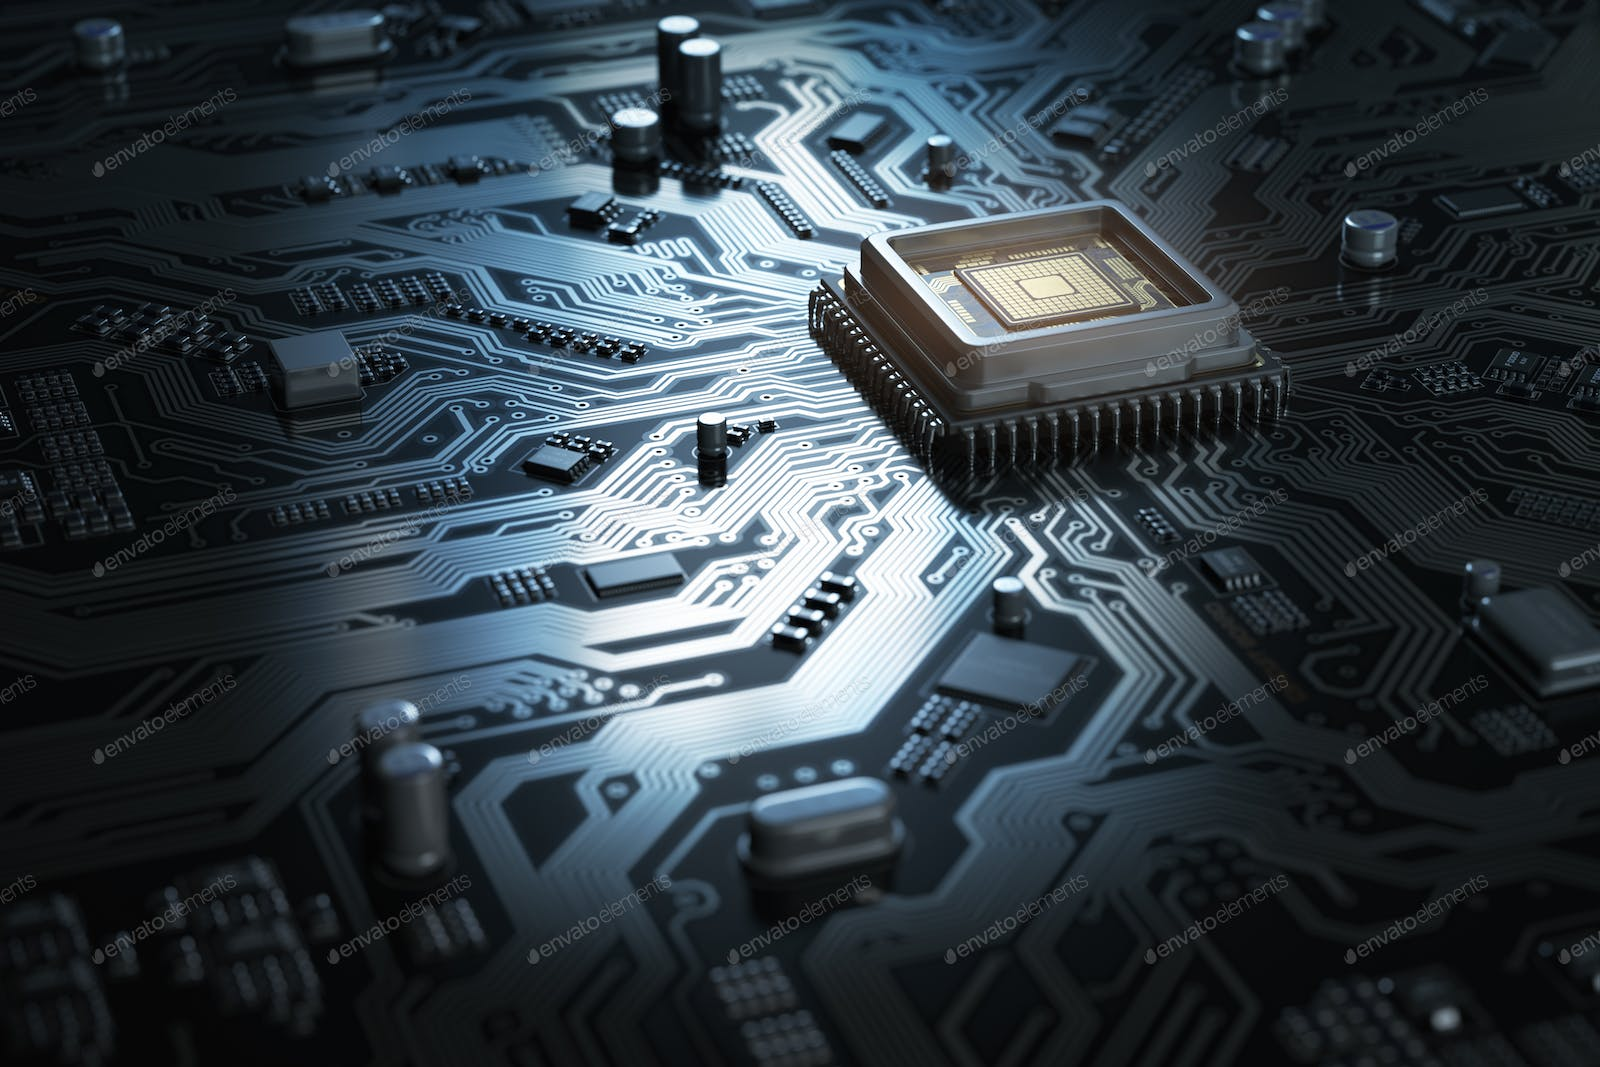 Computer Motherboard With Cpu Circuit Board System Chip Co Graphic Of Technological Theme And Photo By Maxxyustas On Envato Elements